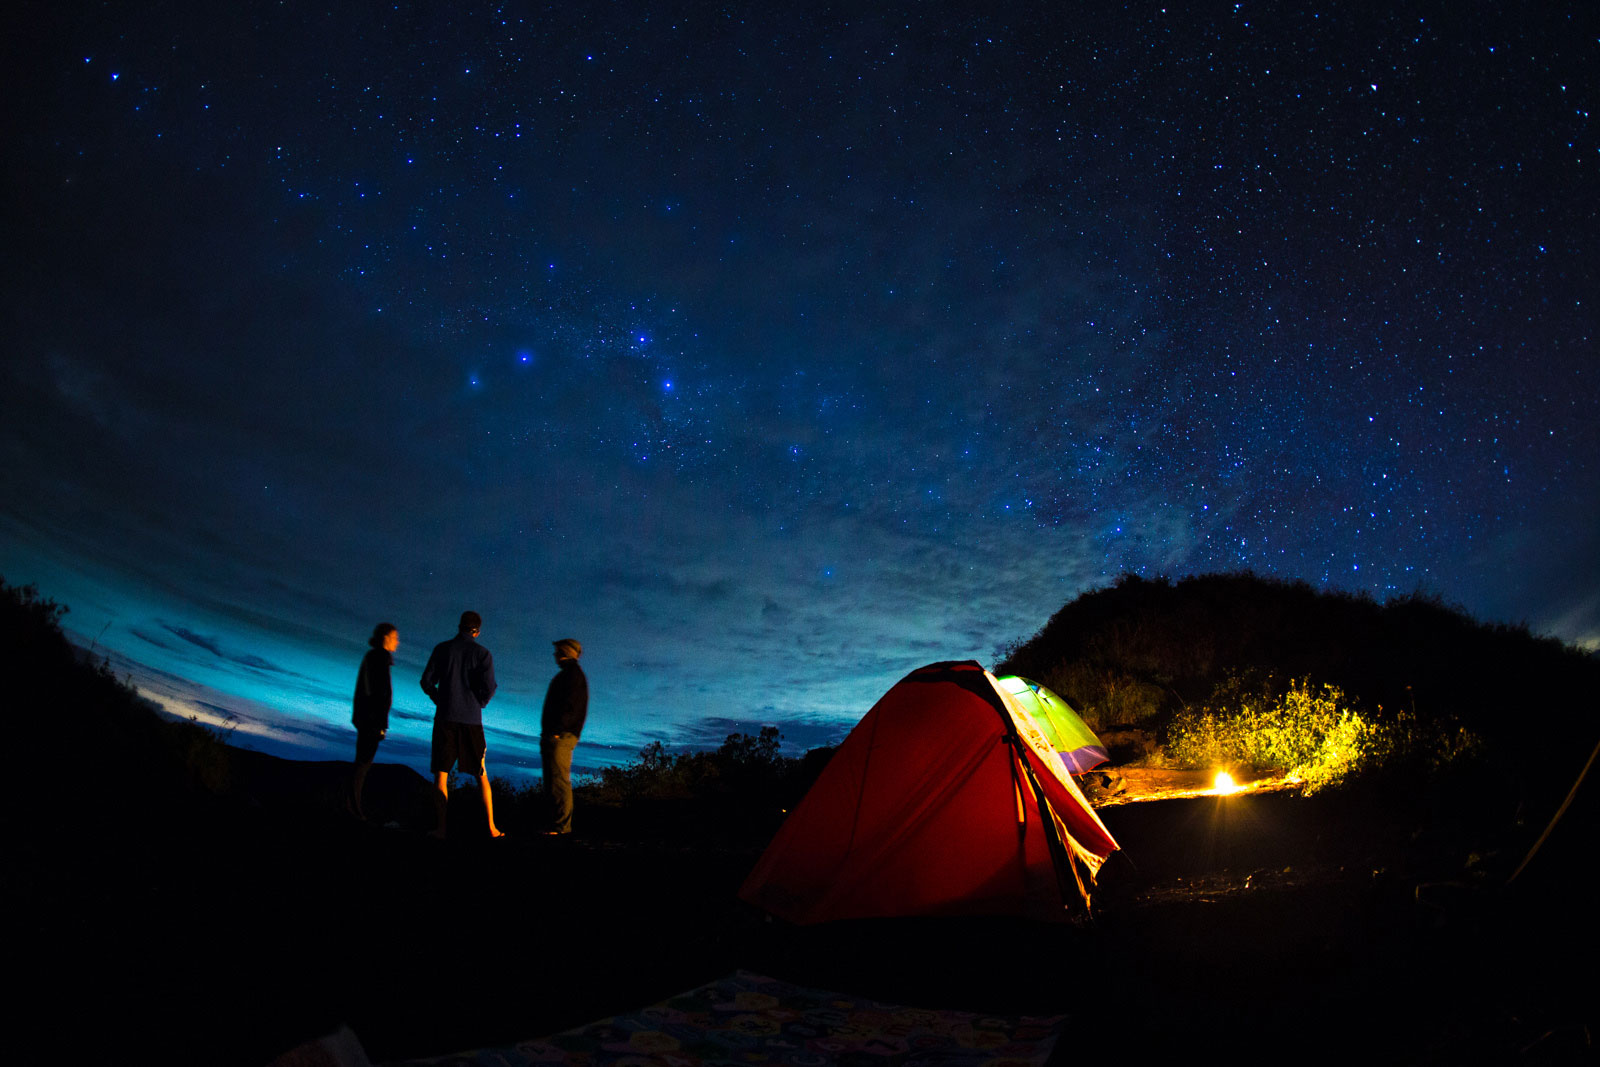 camping outdoor, under the sky